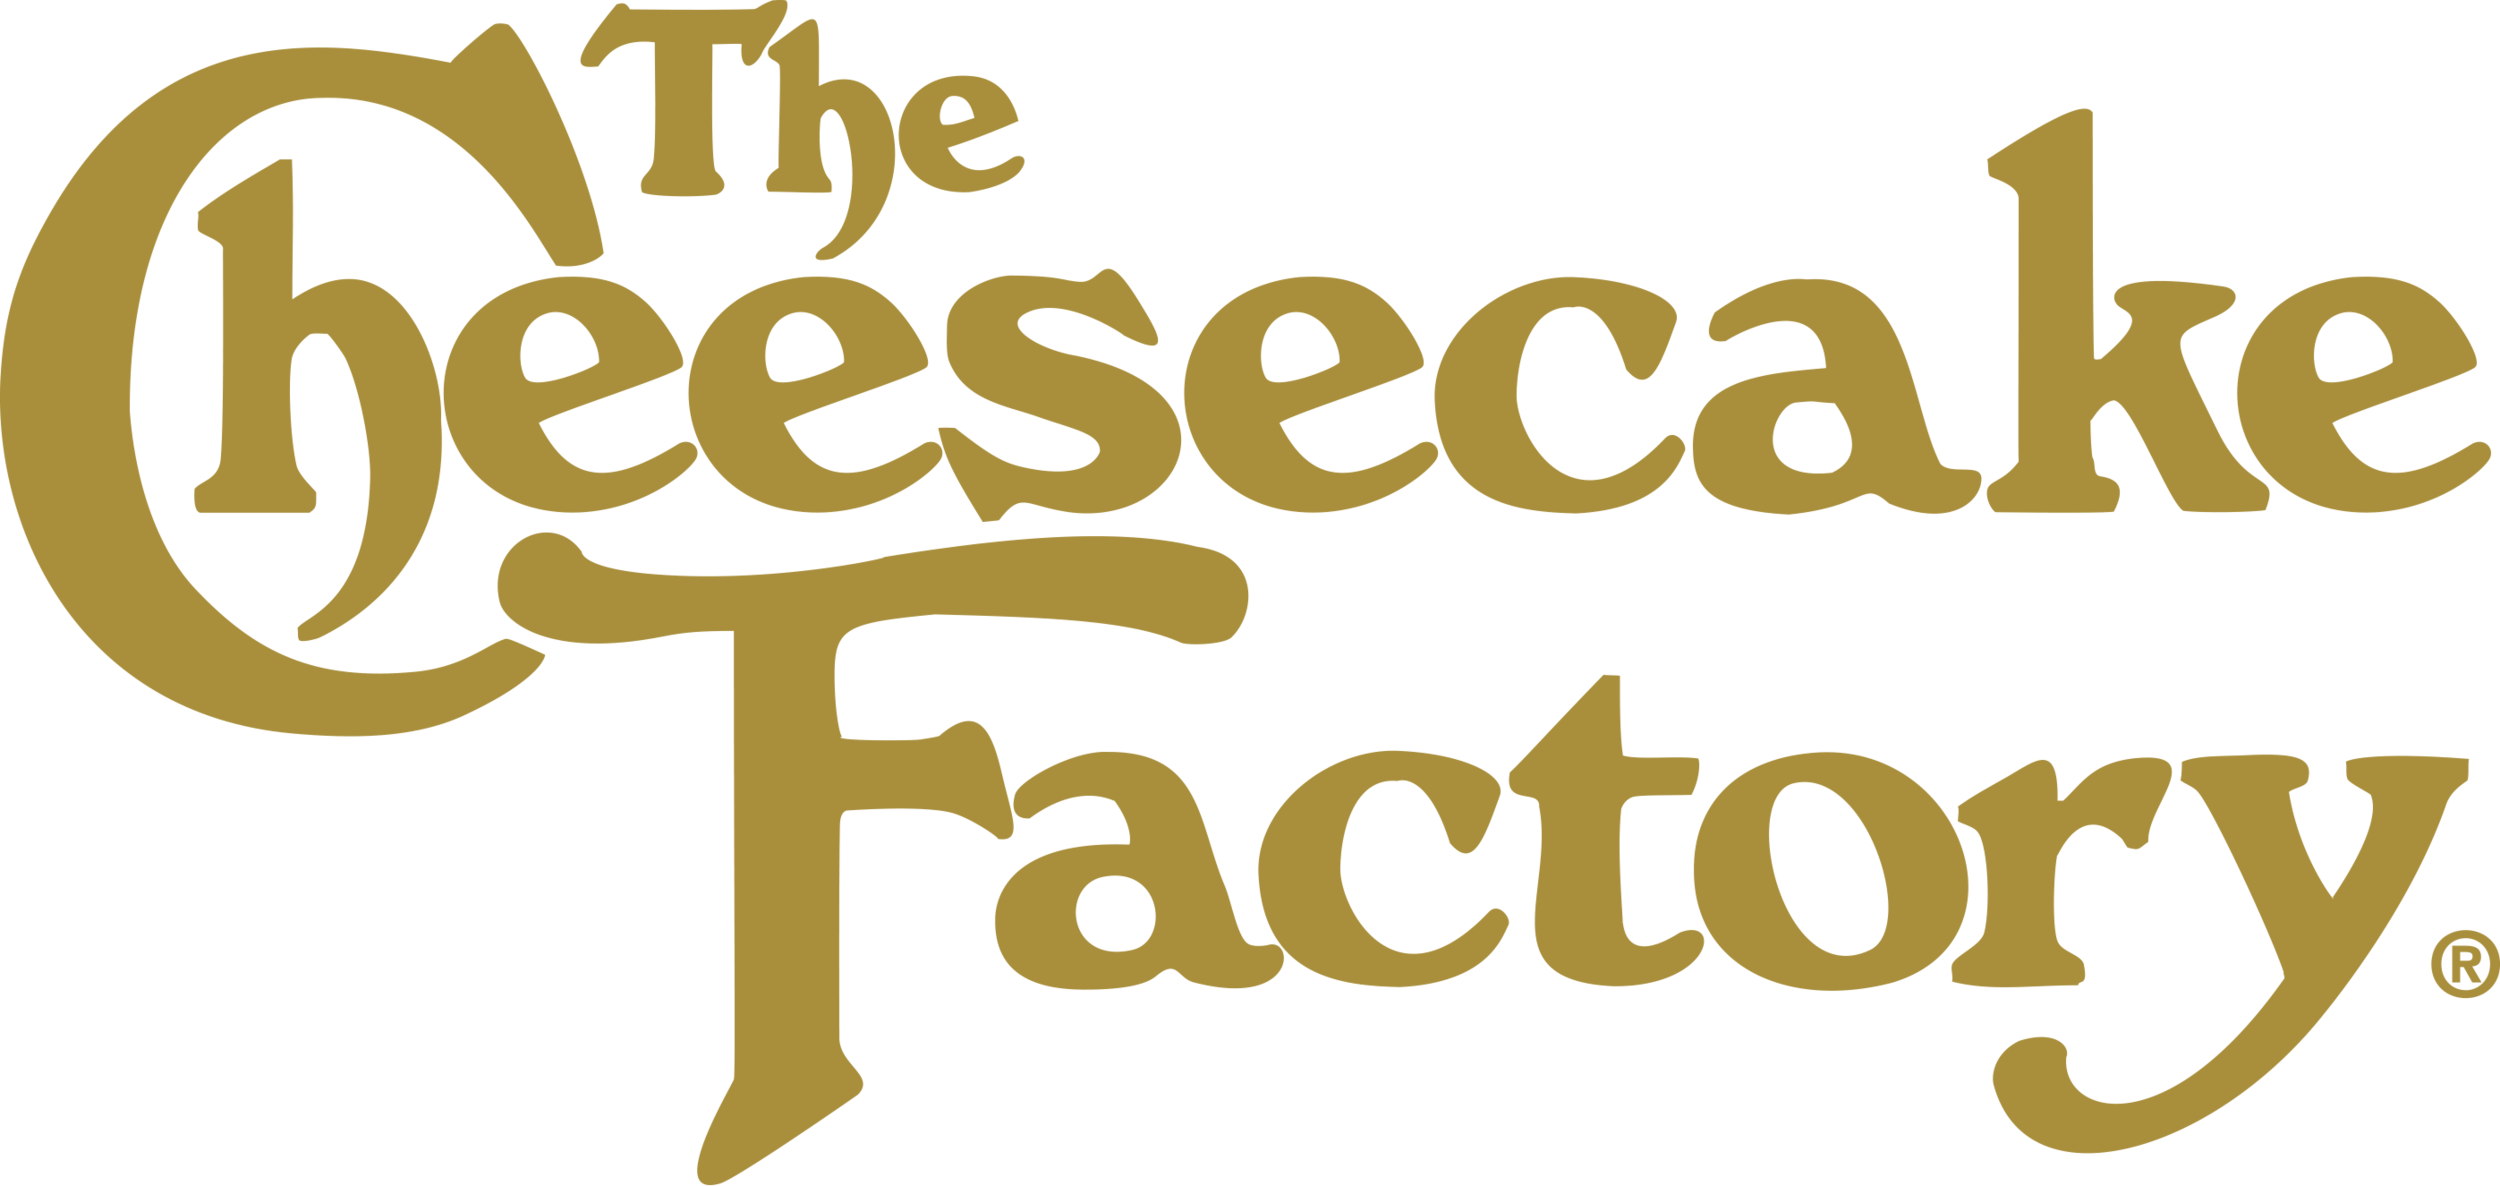 The-Cheesecake-Factory.png